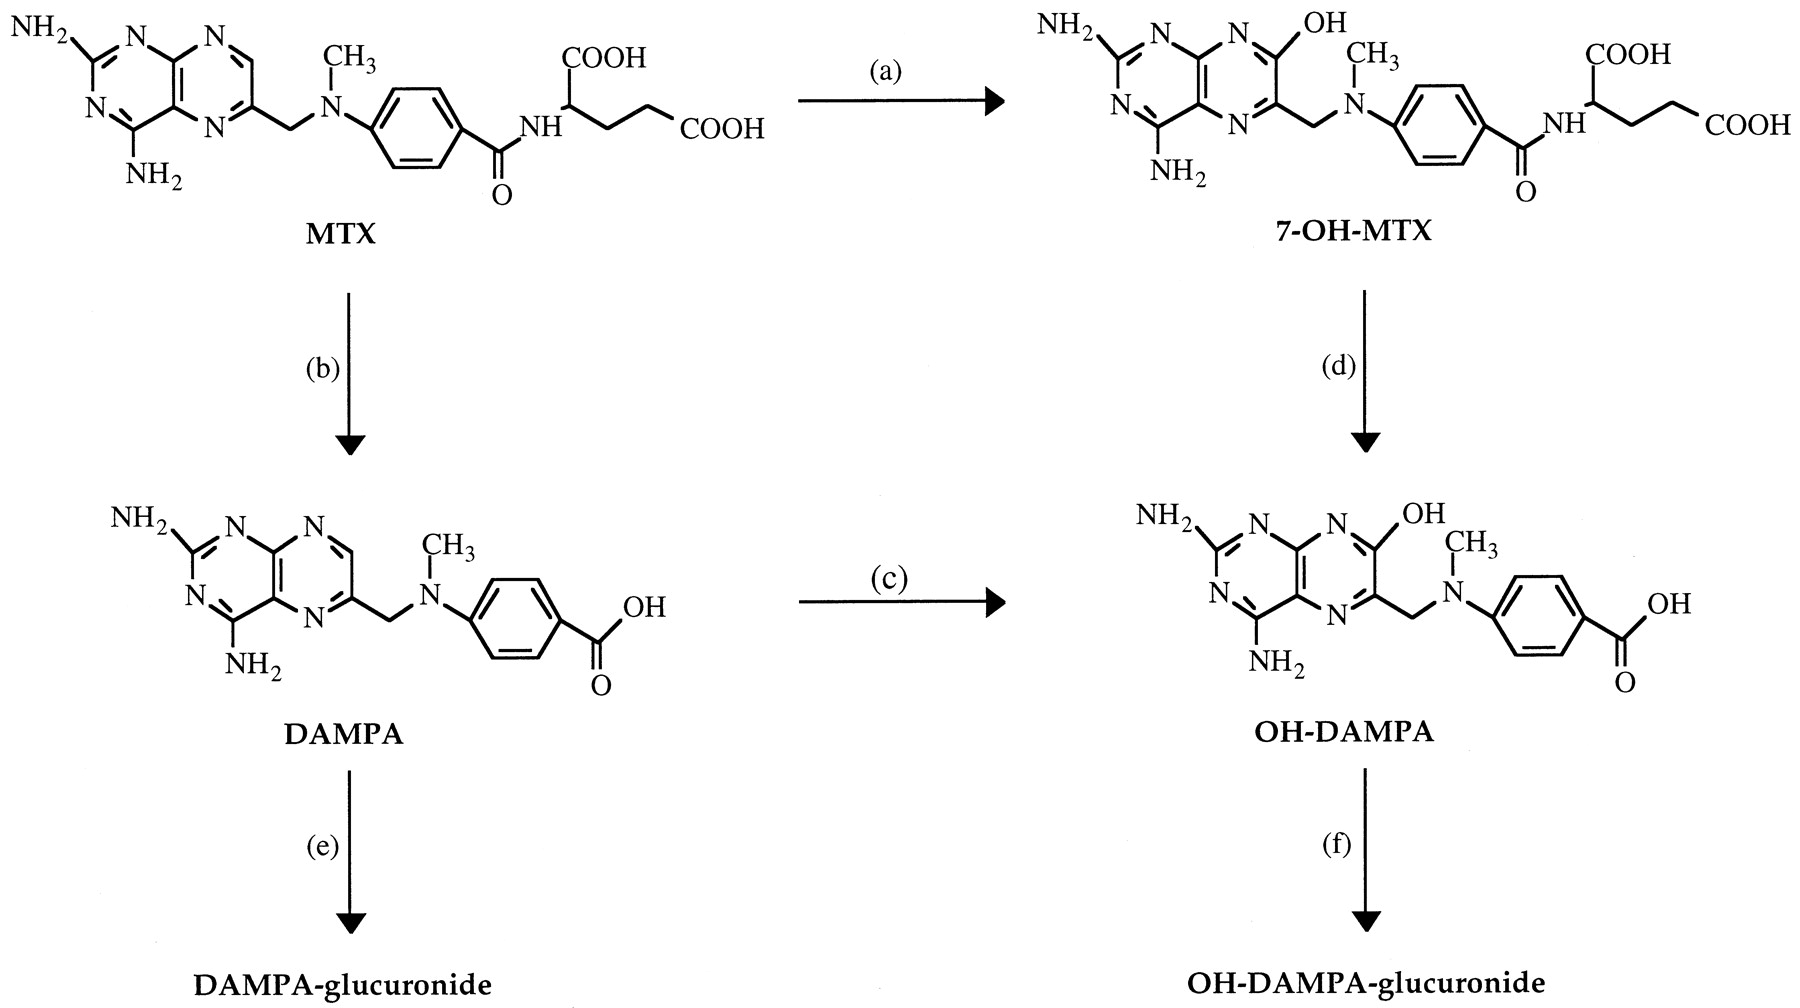 Pharmacokinetics and Metabolism of the Methotrexate Metabolite 2,4